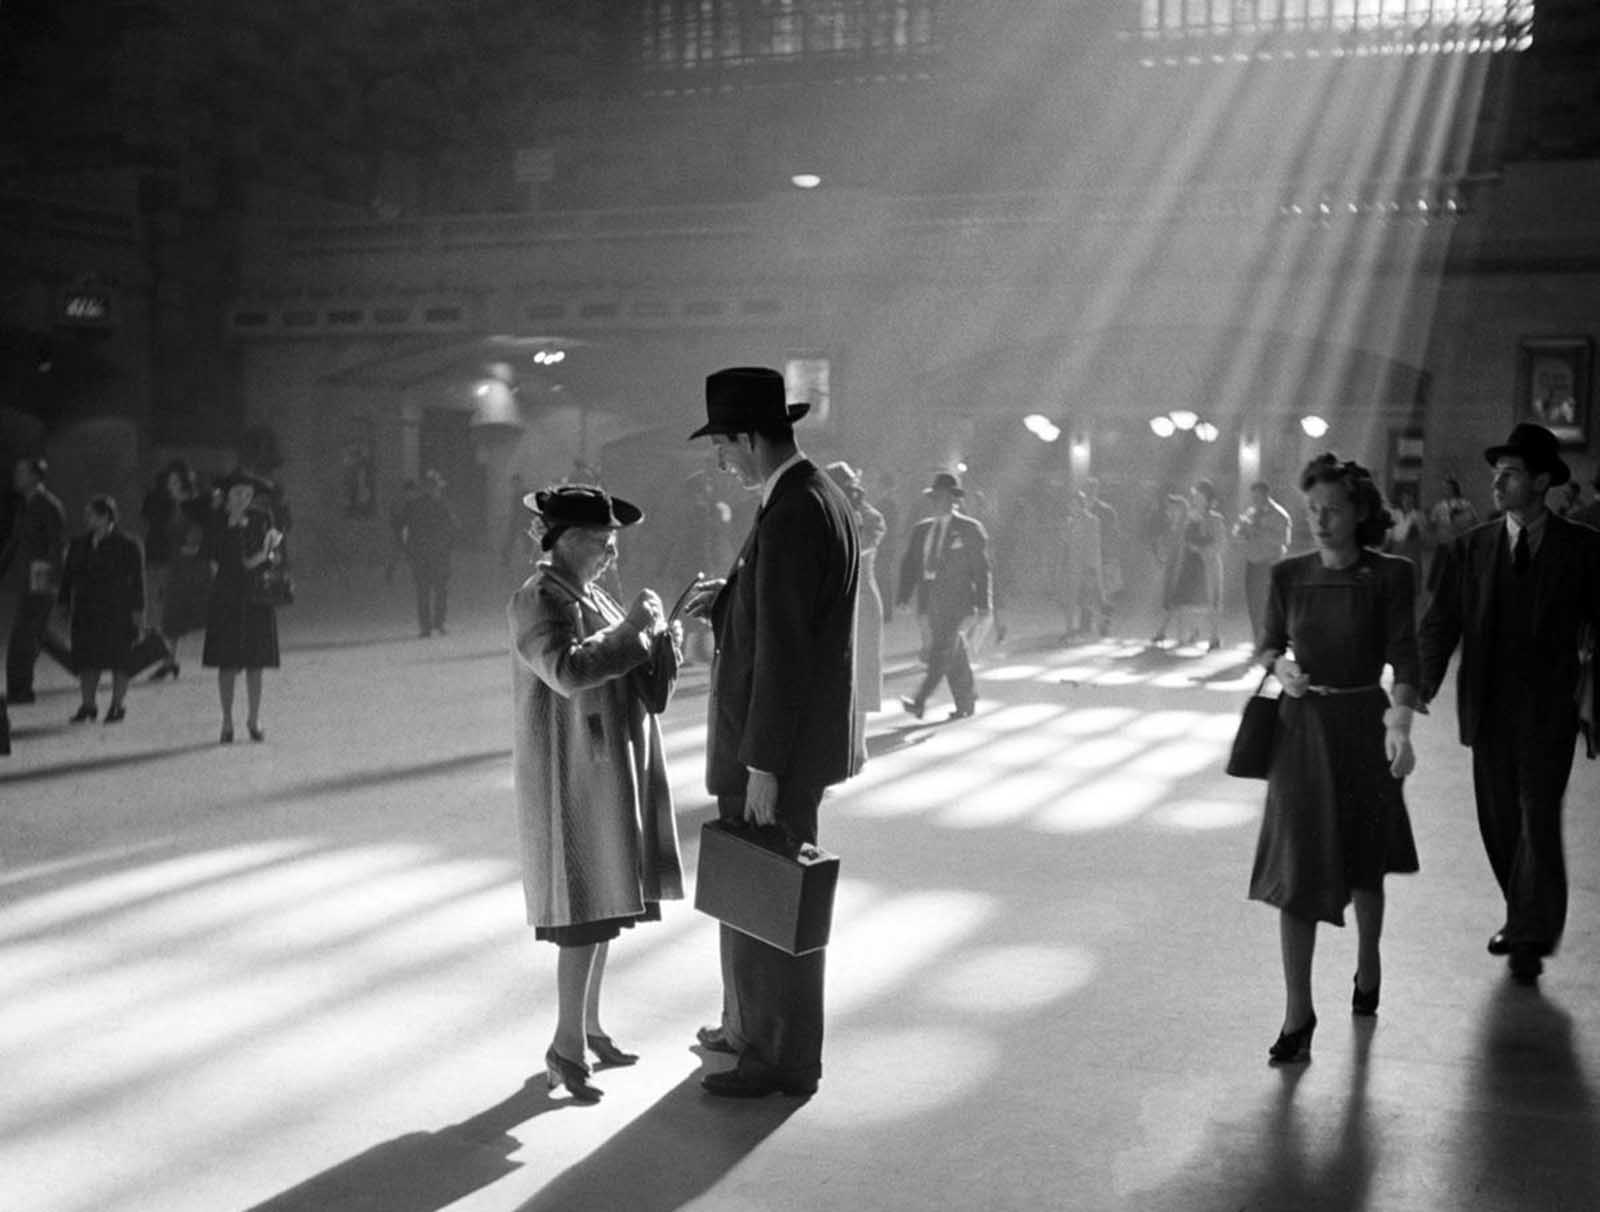 A man and woman talk together as people pass through the Main Concourse of New York's Grand Central Terminal in Midtown Manhattan, in October of 1941.